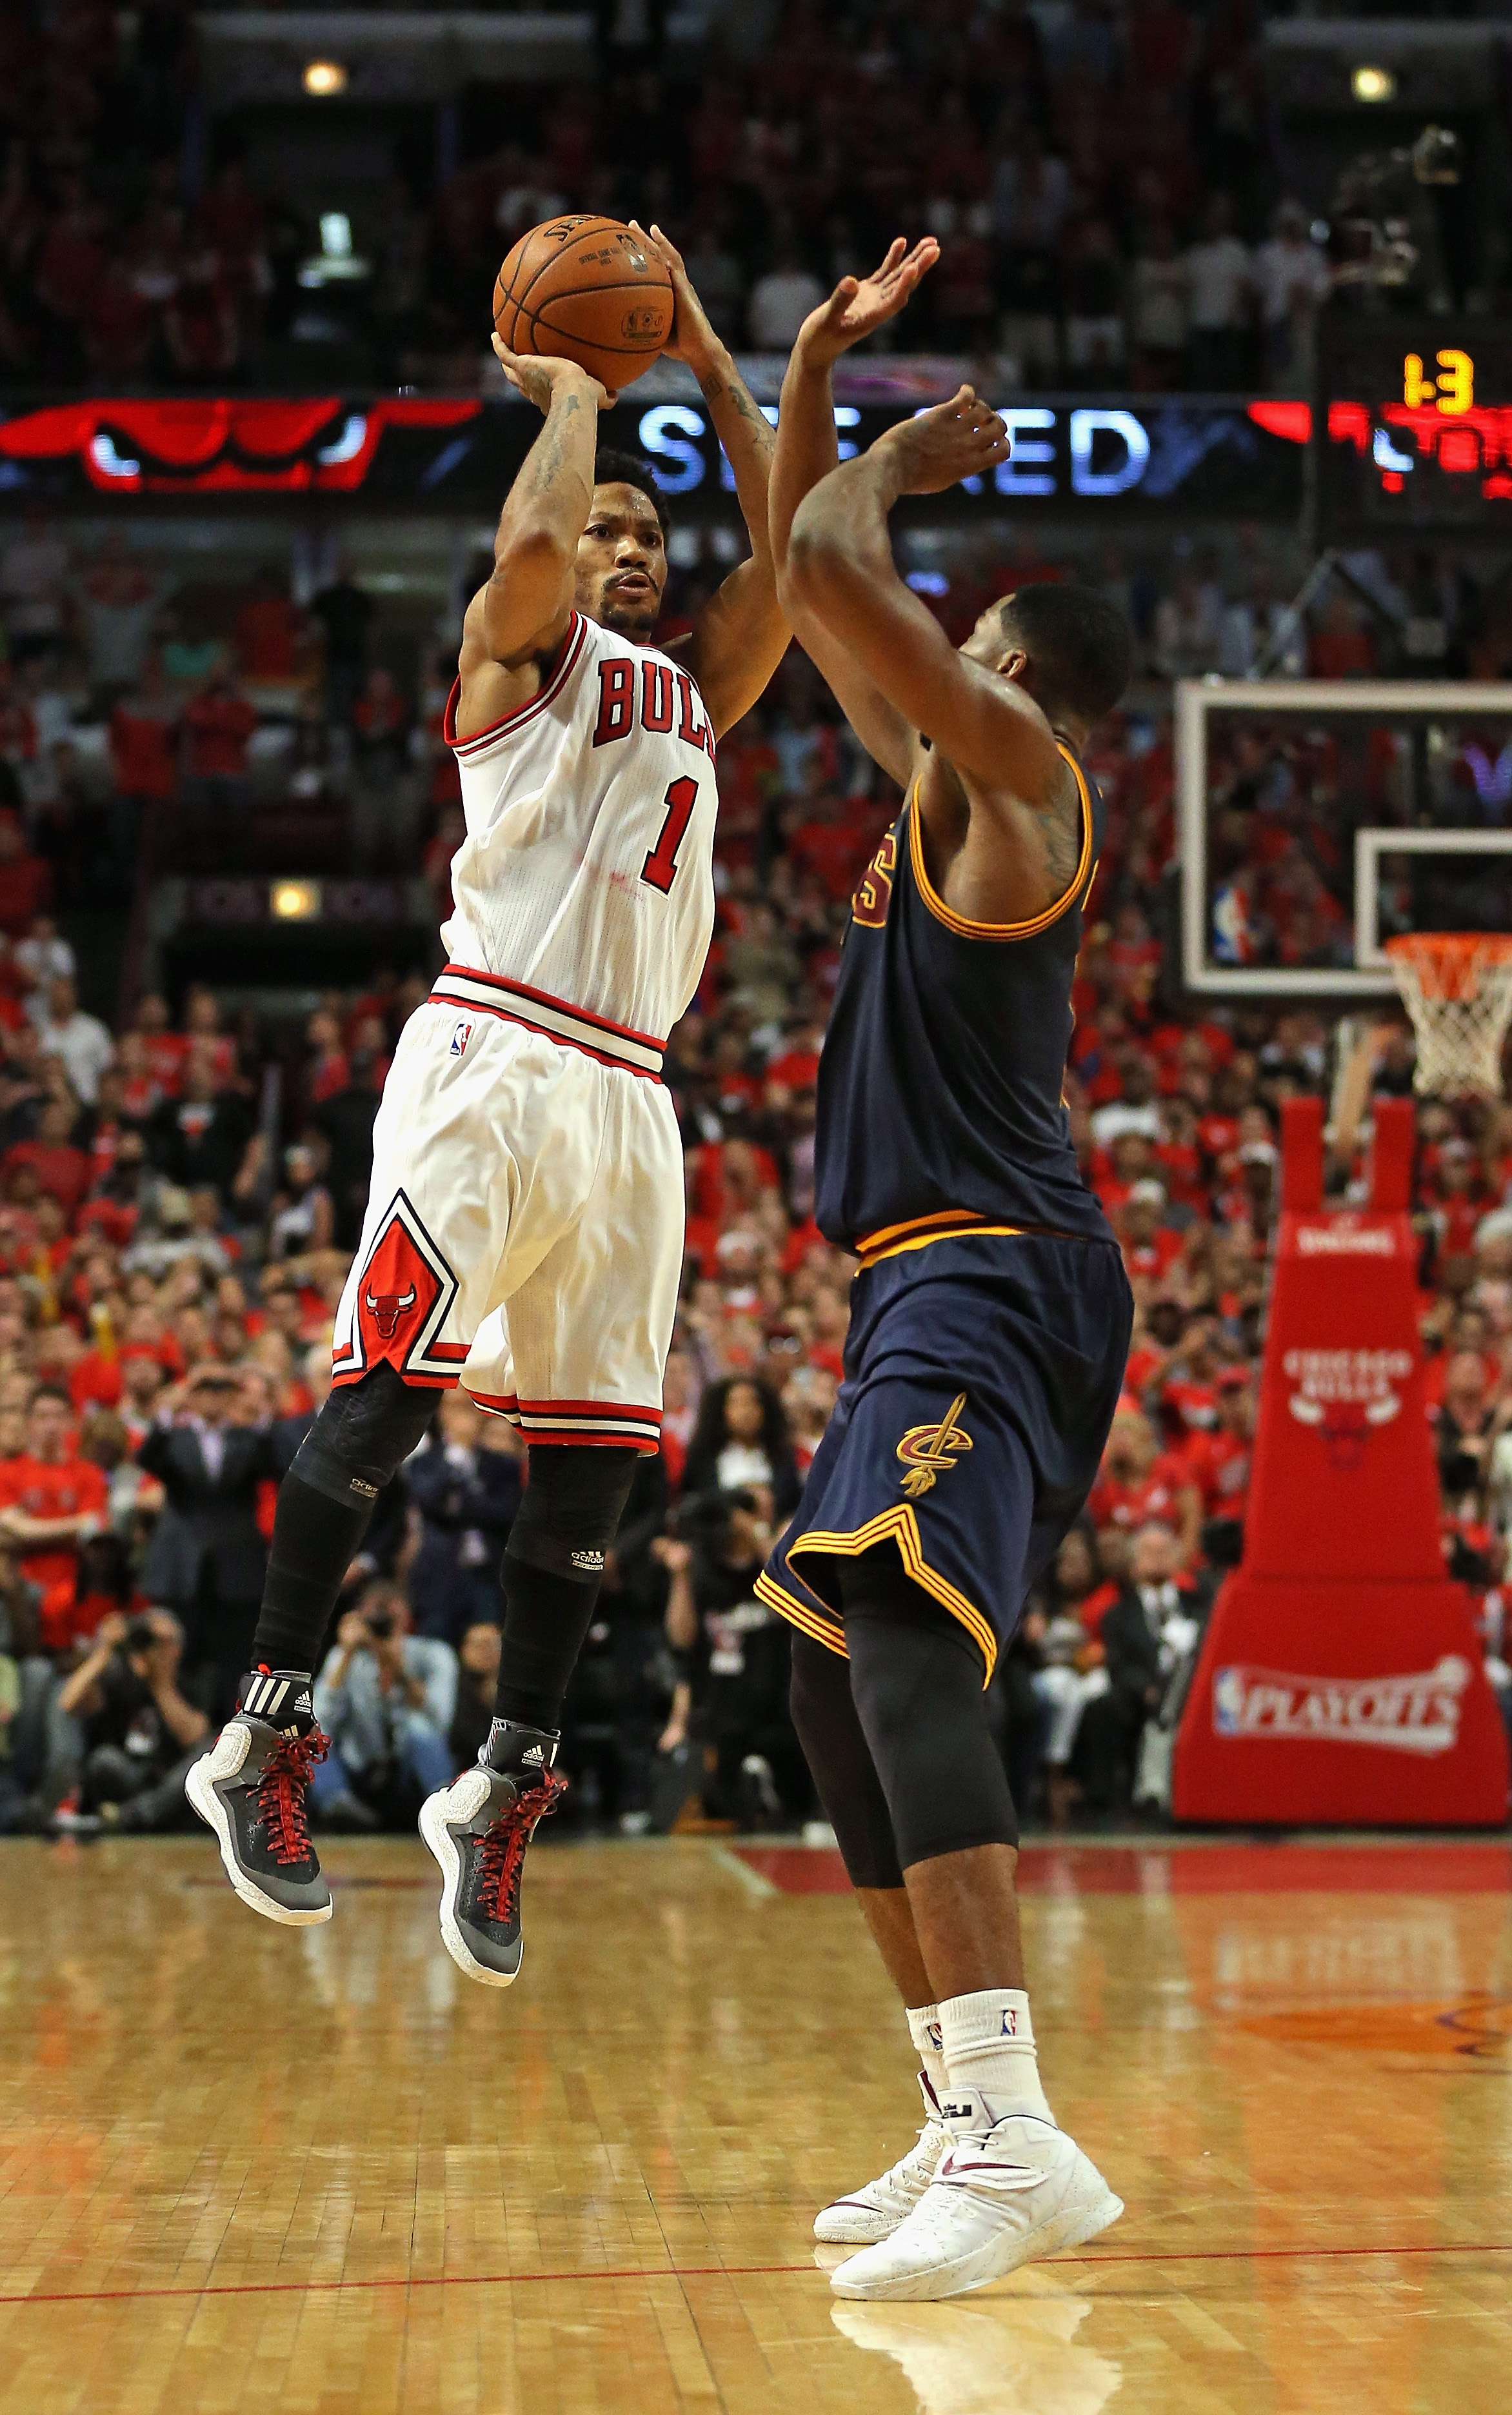 CHICAGO, IL - MAY 08: Derrick Rose #1 of the Chicago Bulls takes the game-winning three-point shot over Tristan Thompson #13 of the Cleveland Cavaliers in Game Three of the Eastern Conference Semifinals of the 2015 NBA Playoffs at the United Center on May